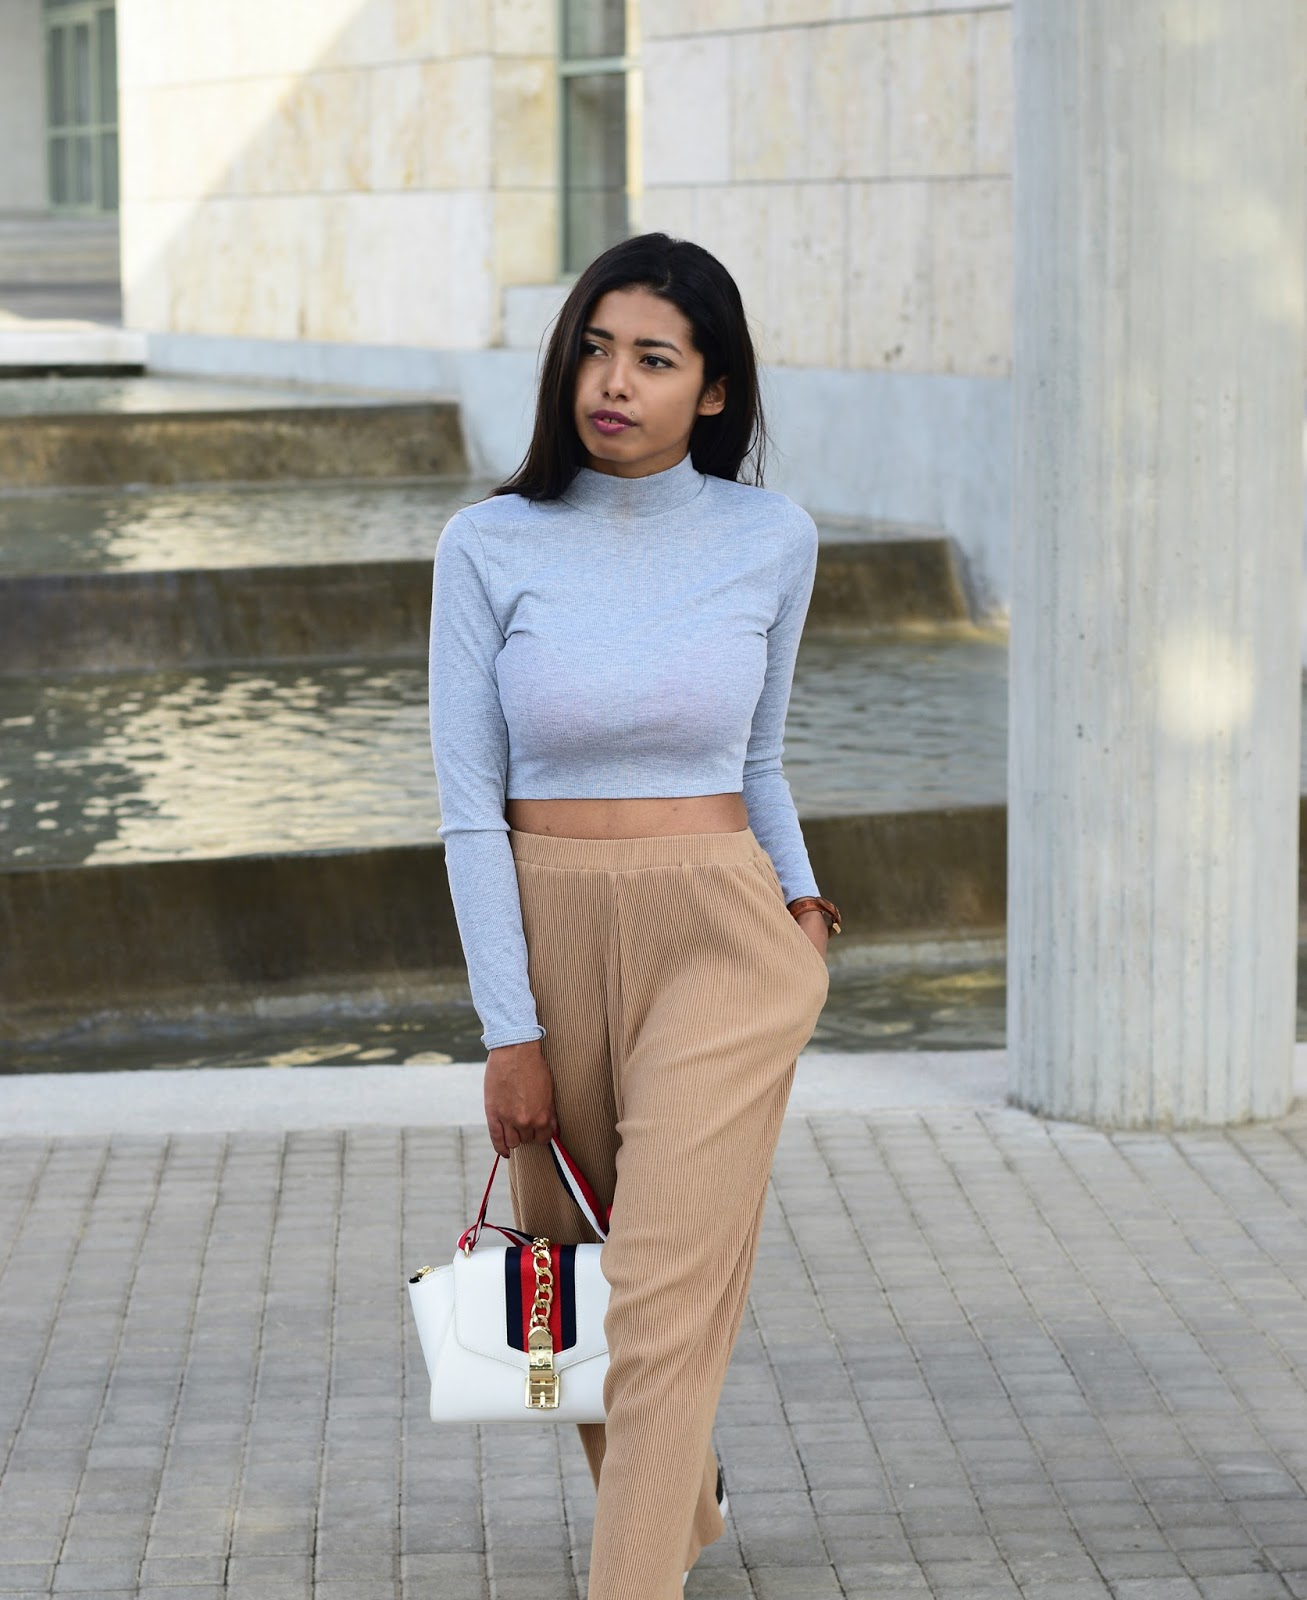 Cropped Sleeve Top outfit ideas for fall